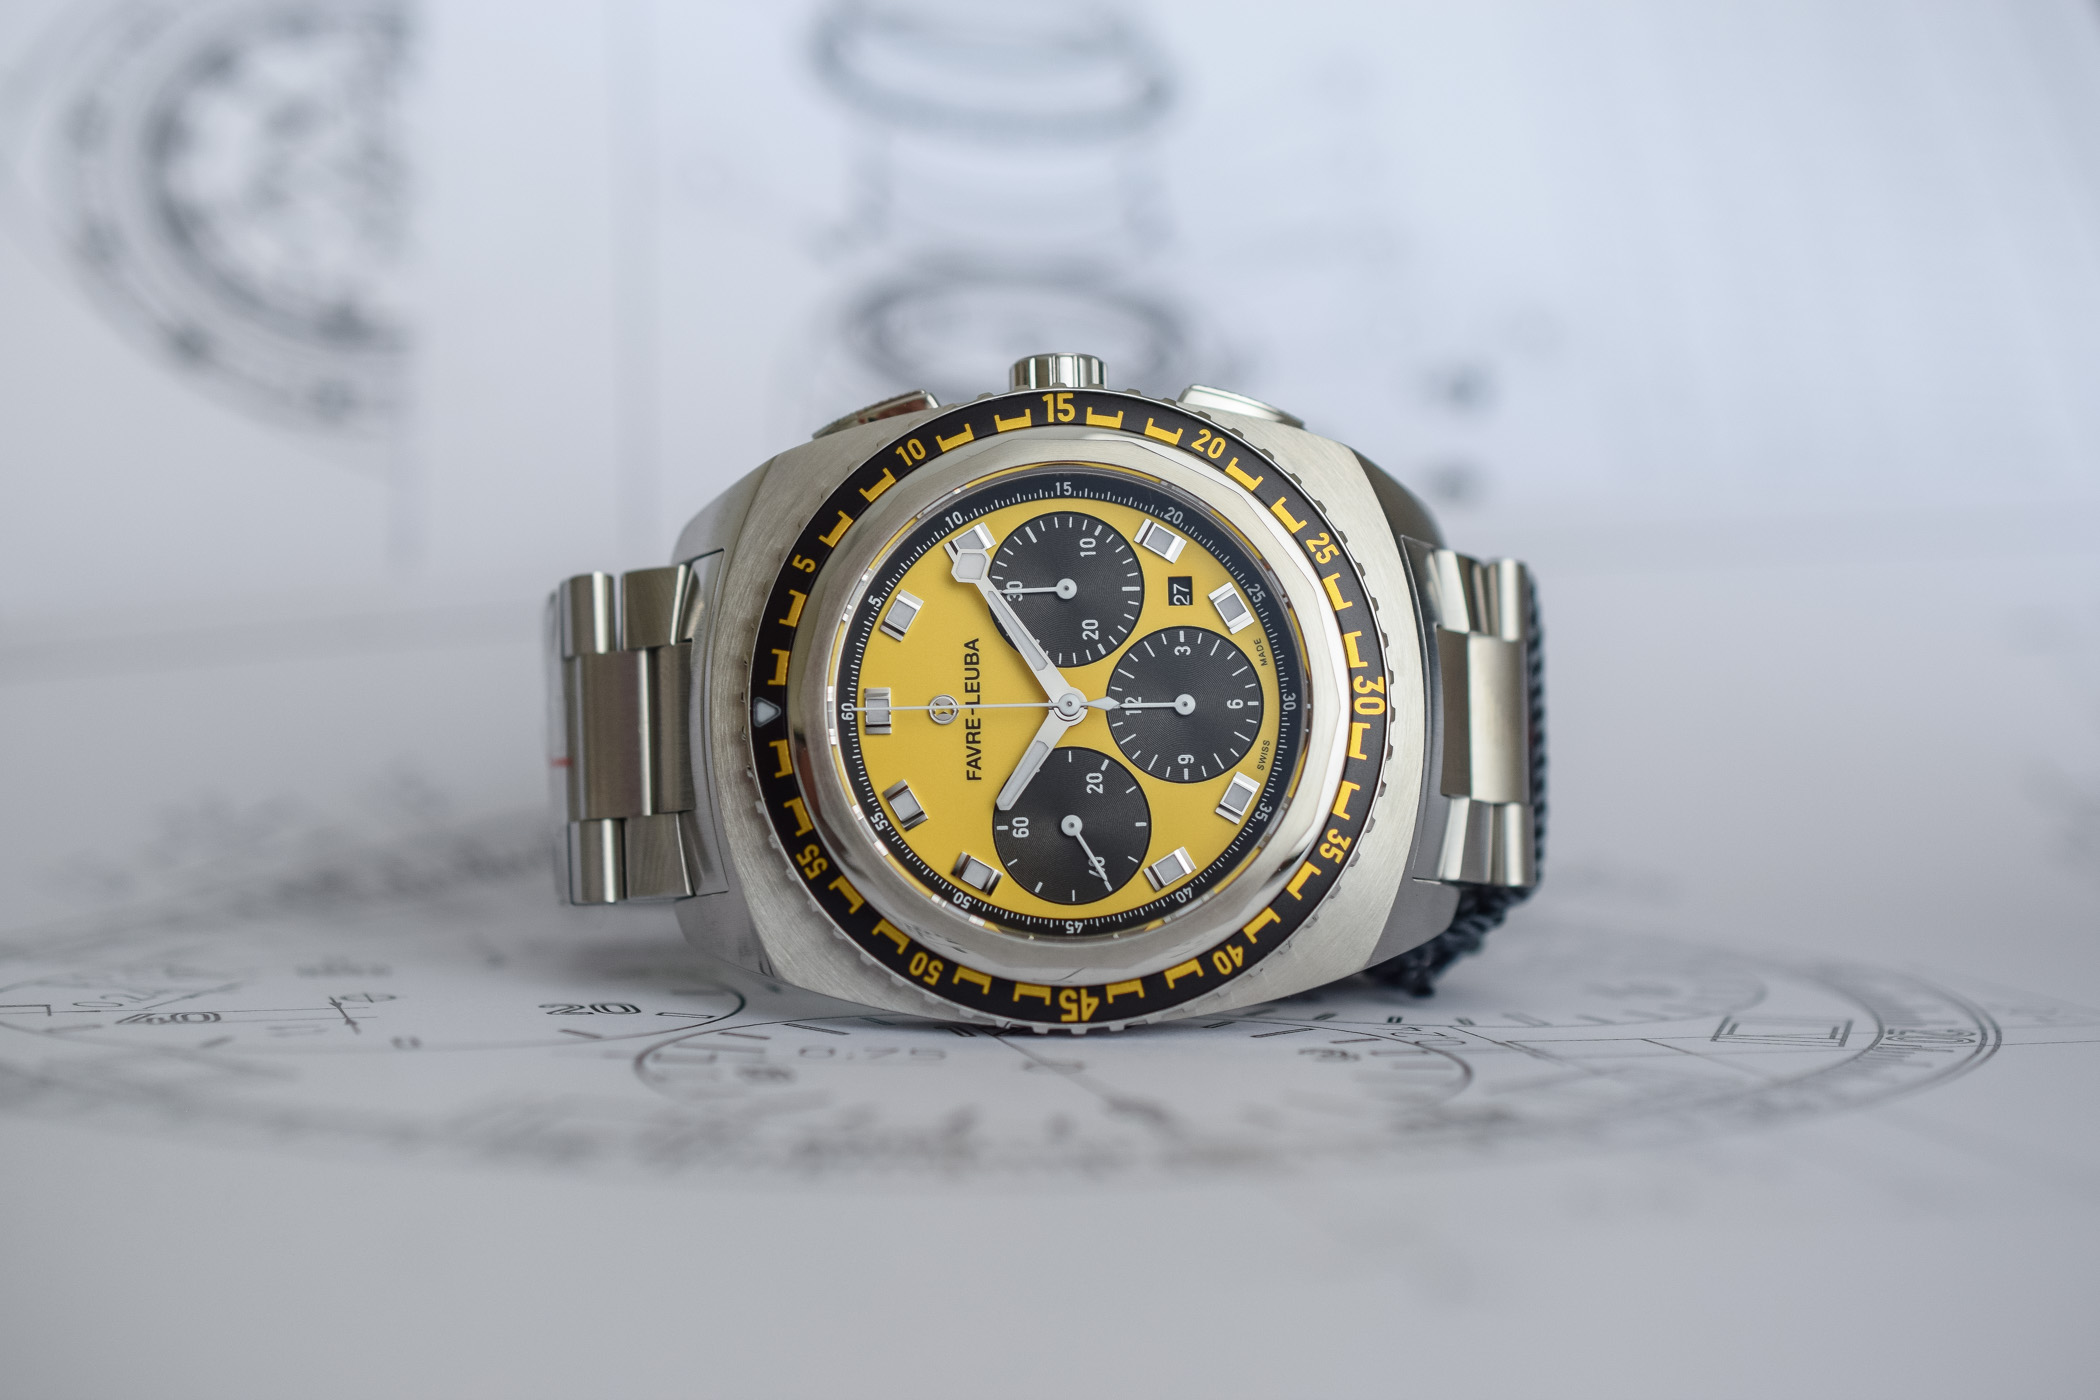 Favre-Leuba Raider Sea Sky Chronograph Bright Orange and Yellow